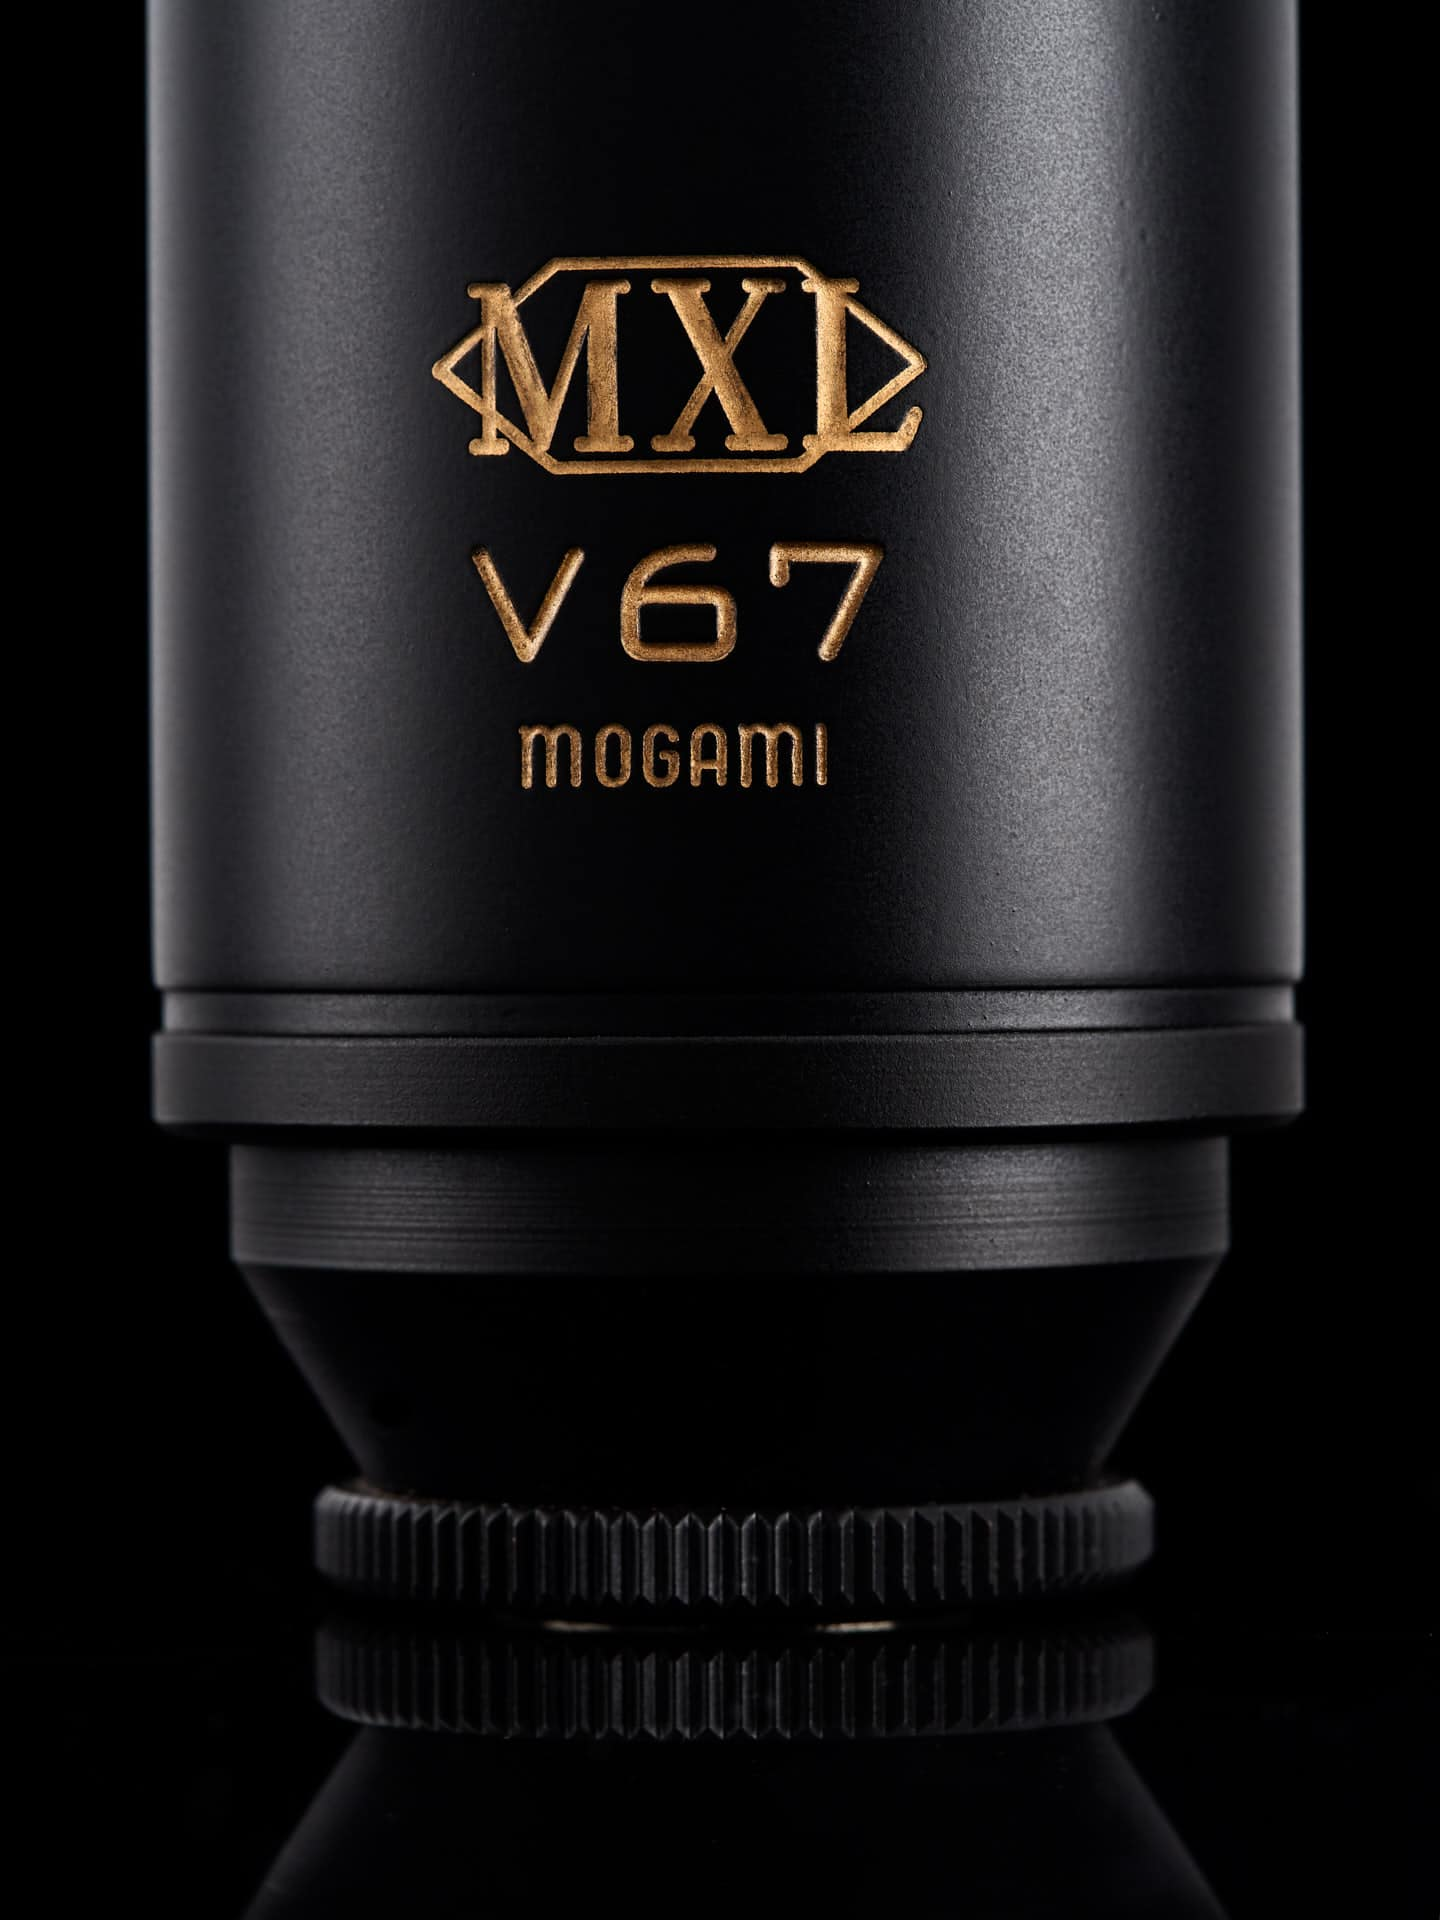 Closeup of a Mogami microphone.